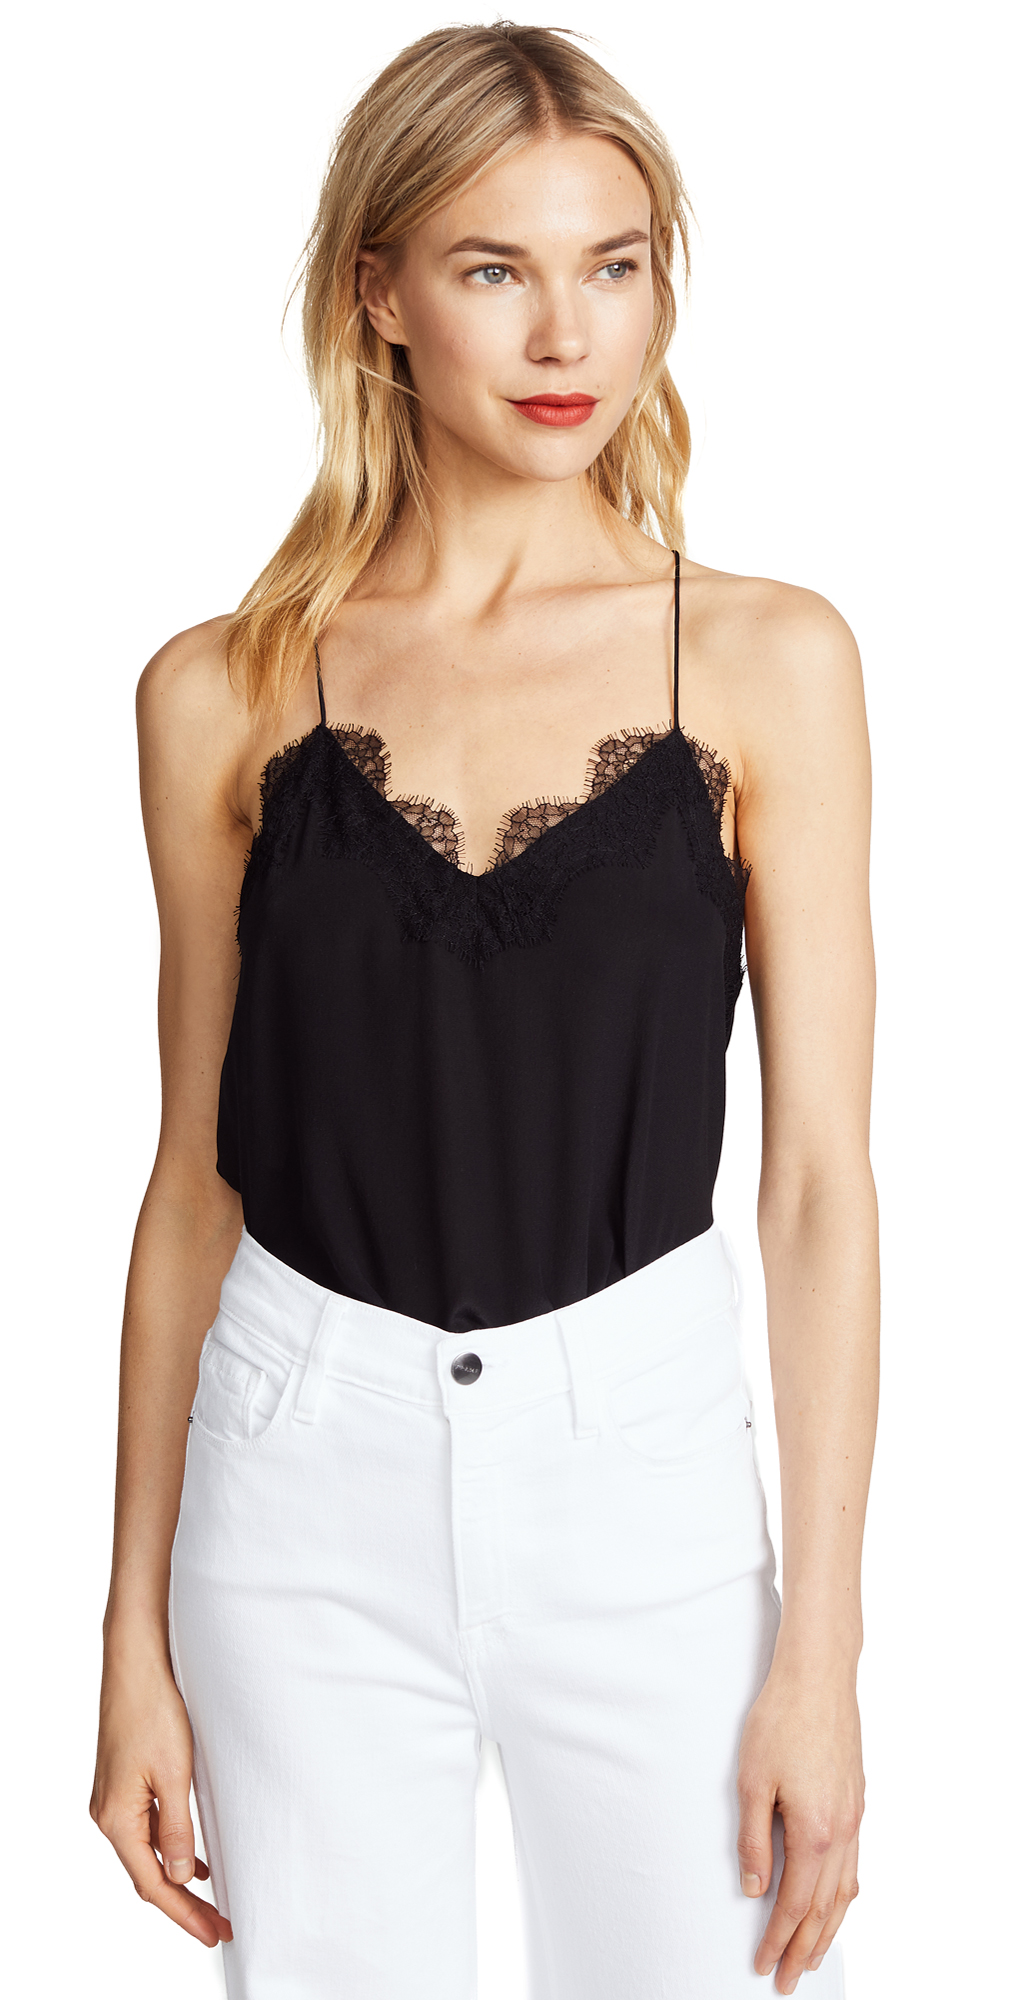 The Racer Top